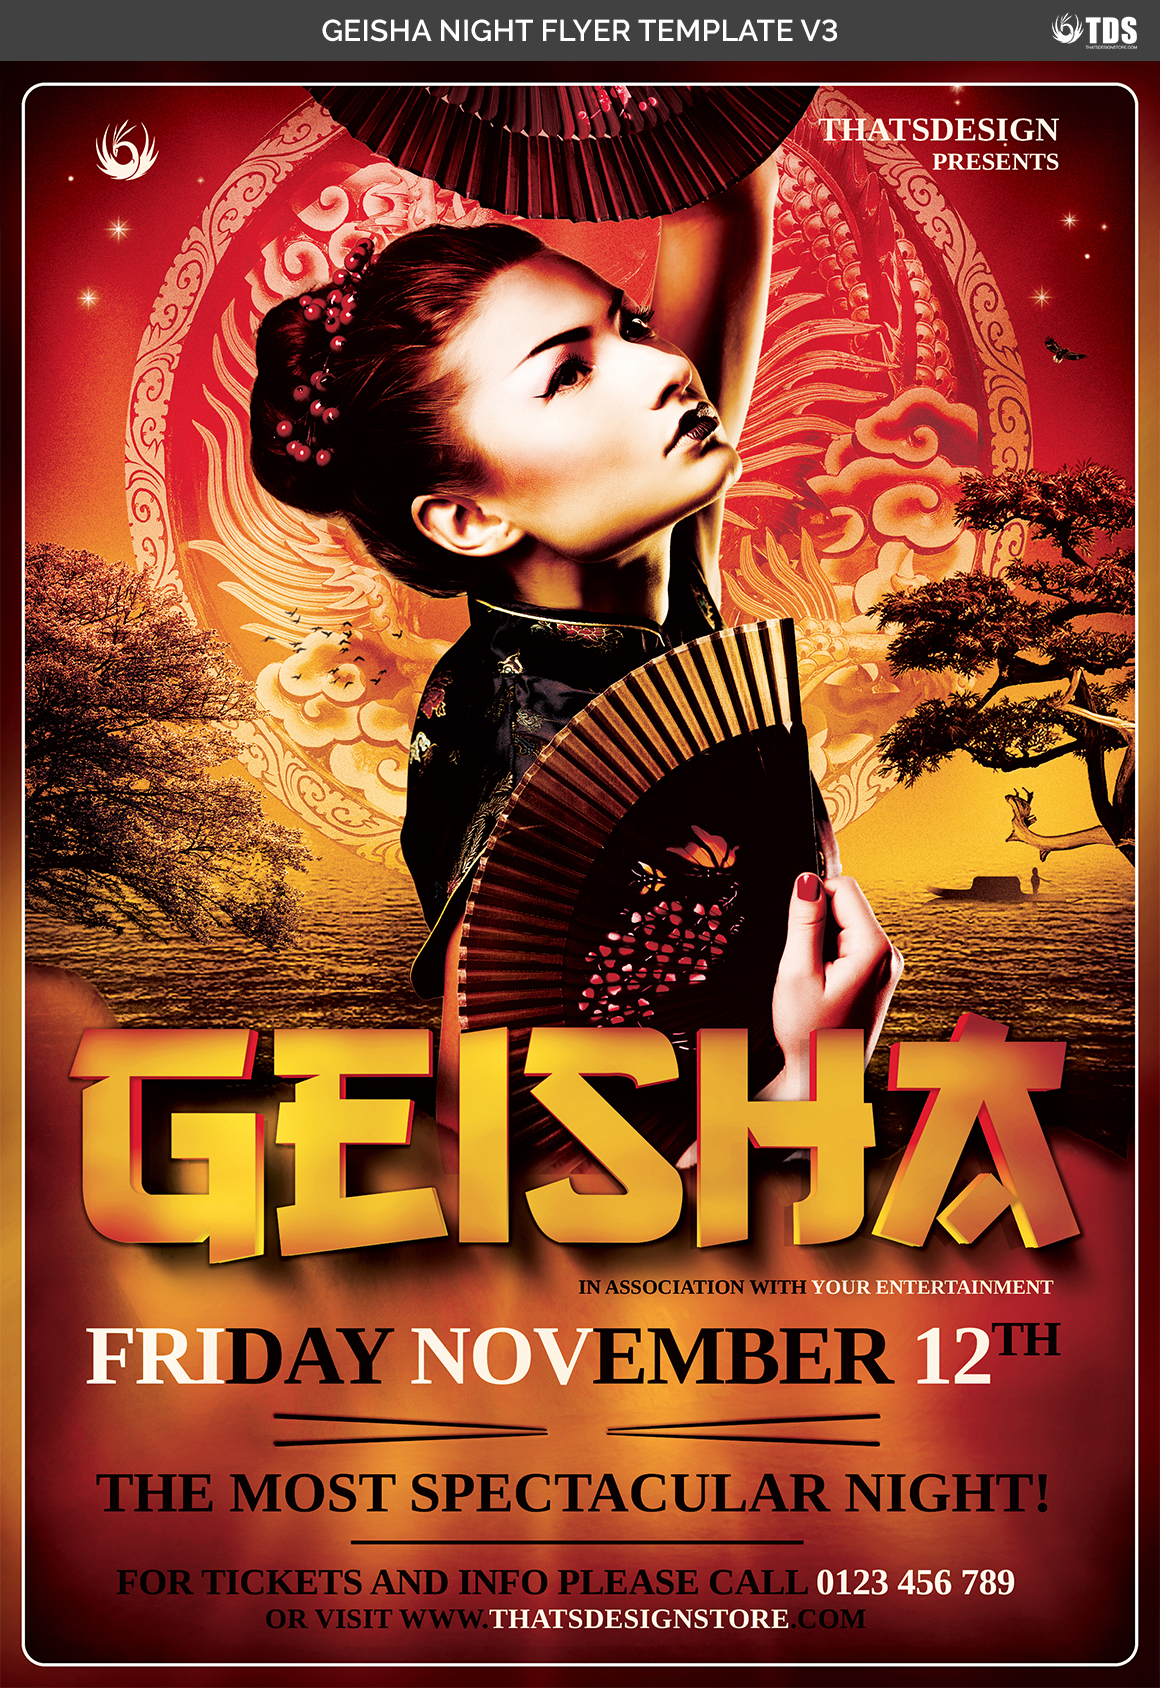 Geisha Night Flyer Template V3 example image 4